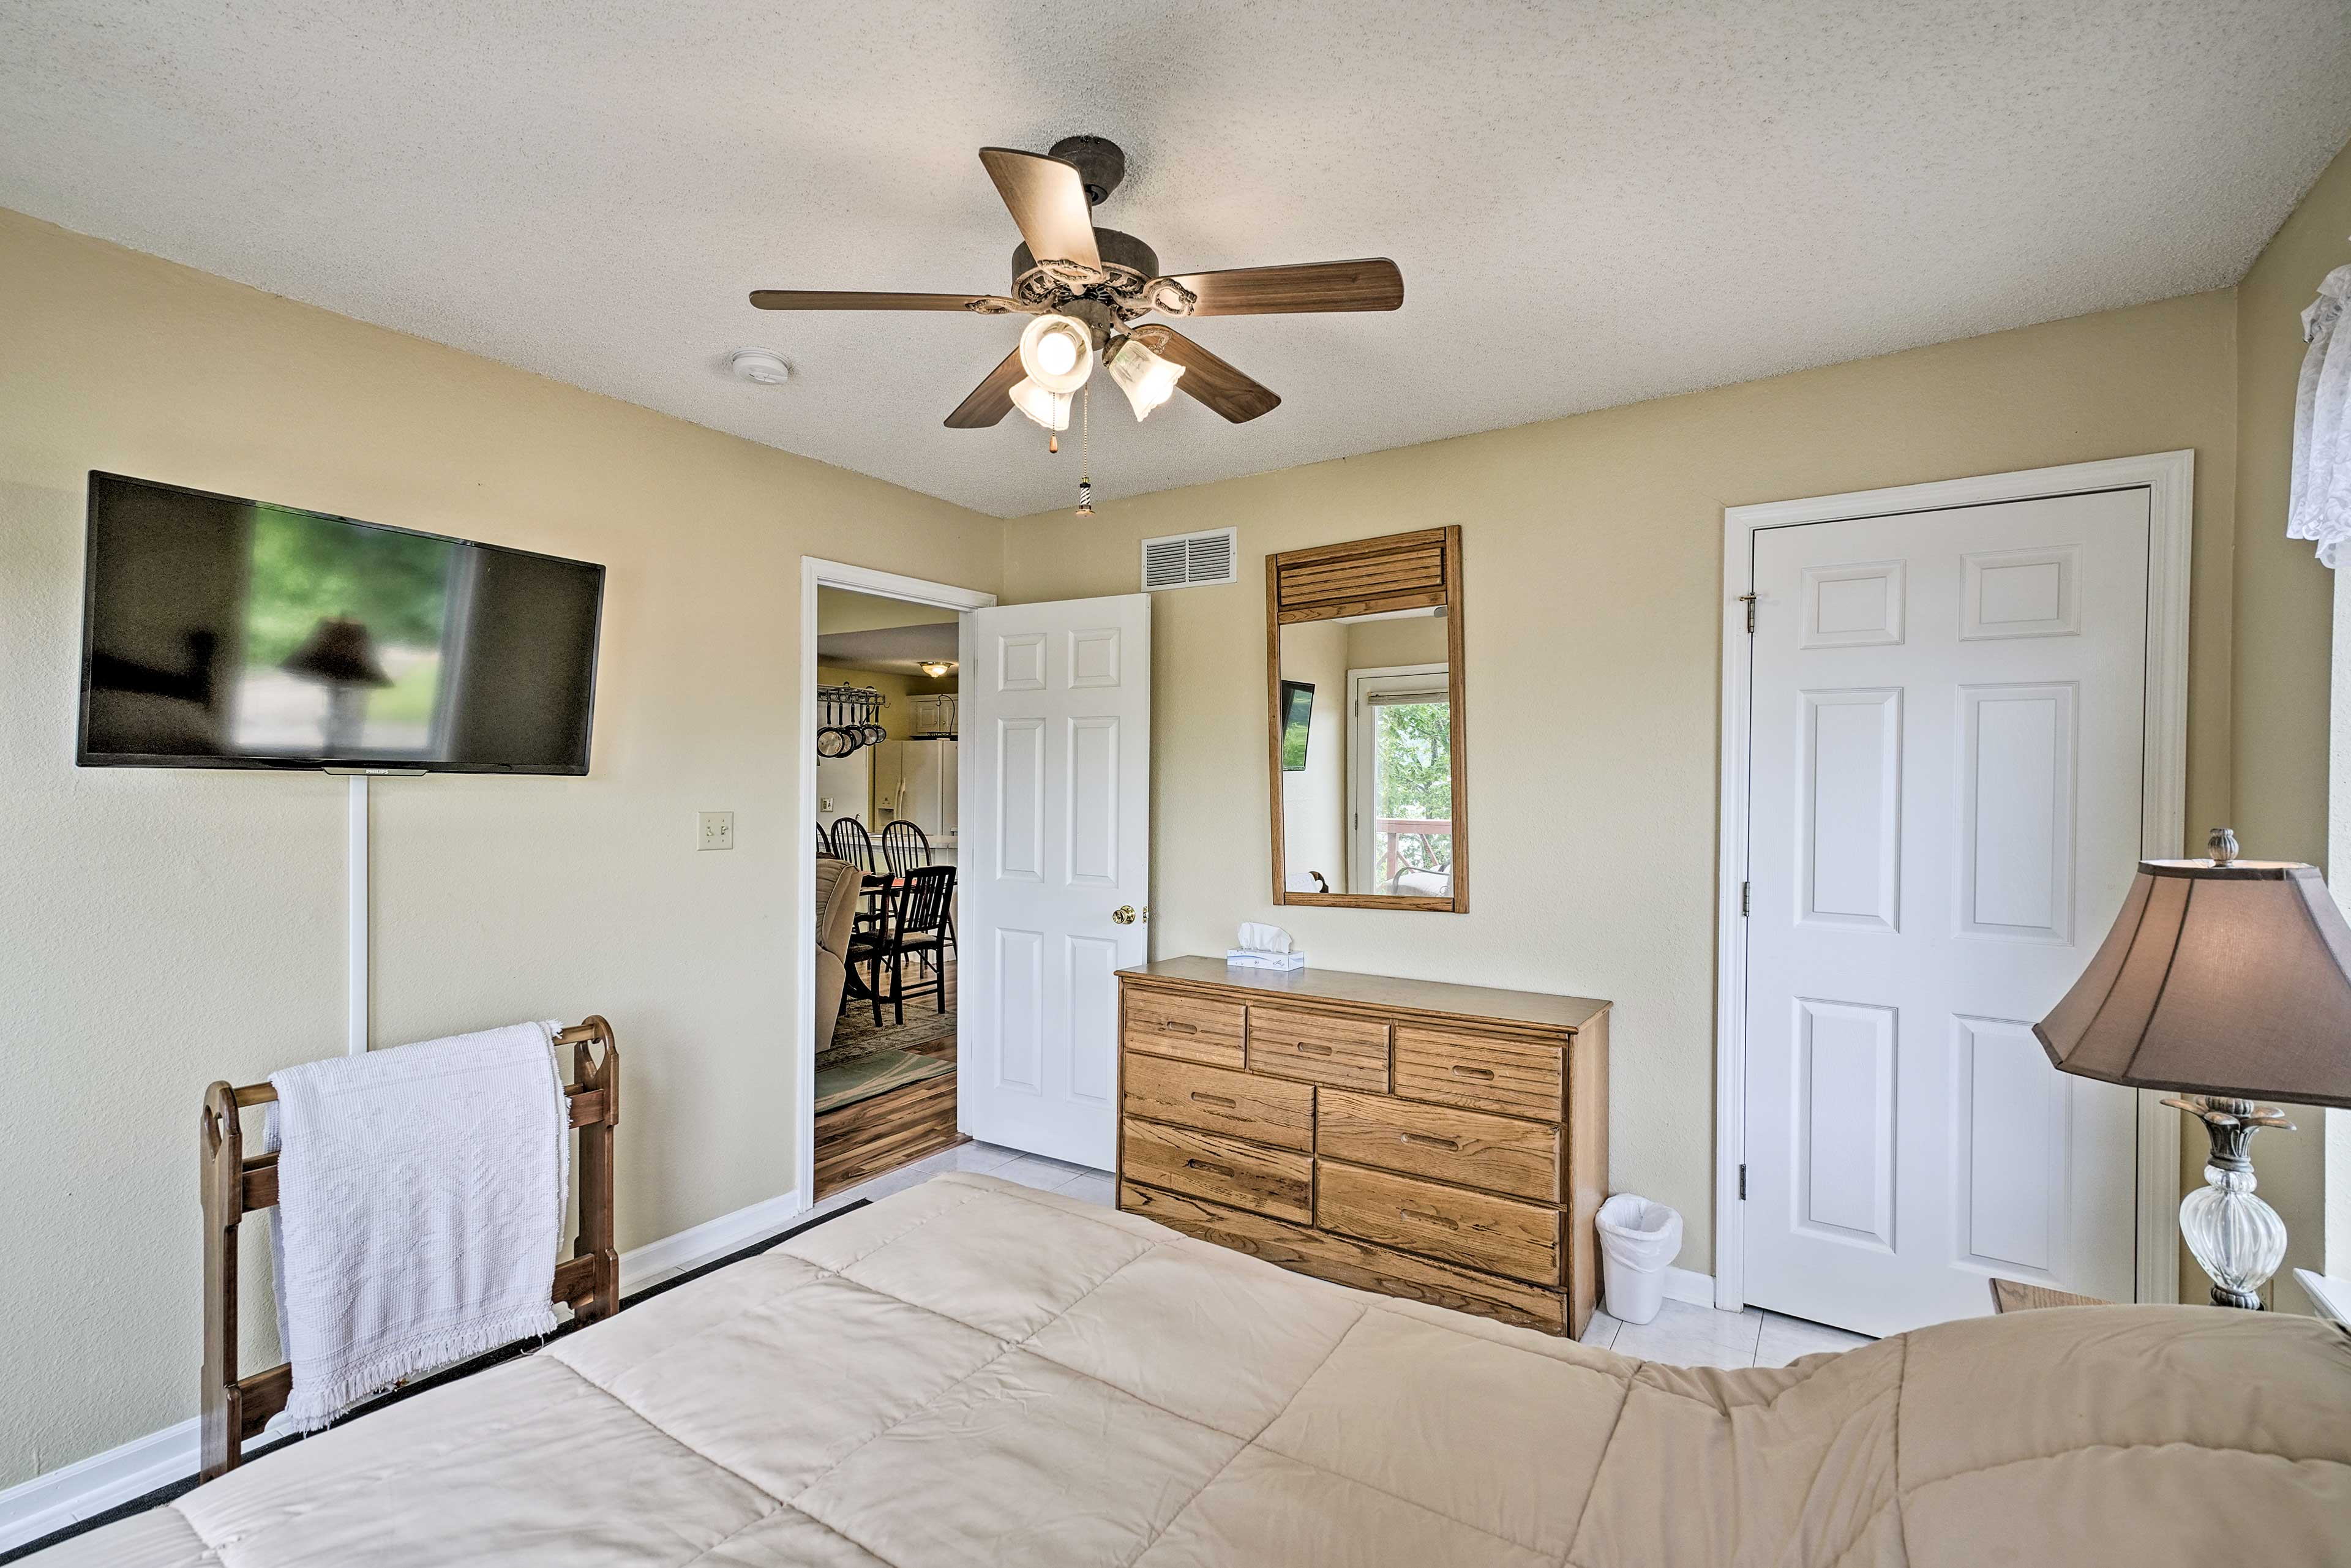 Additional highlights include a queen bed, ceiling fan, and flat-screen TV.